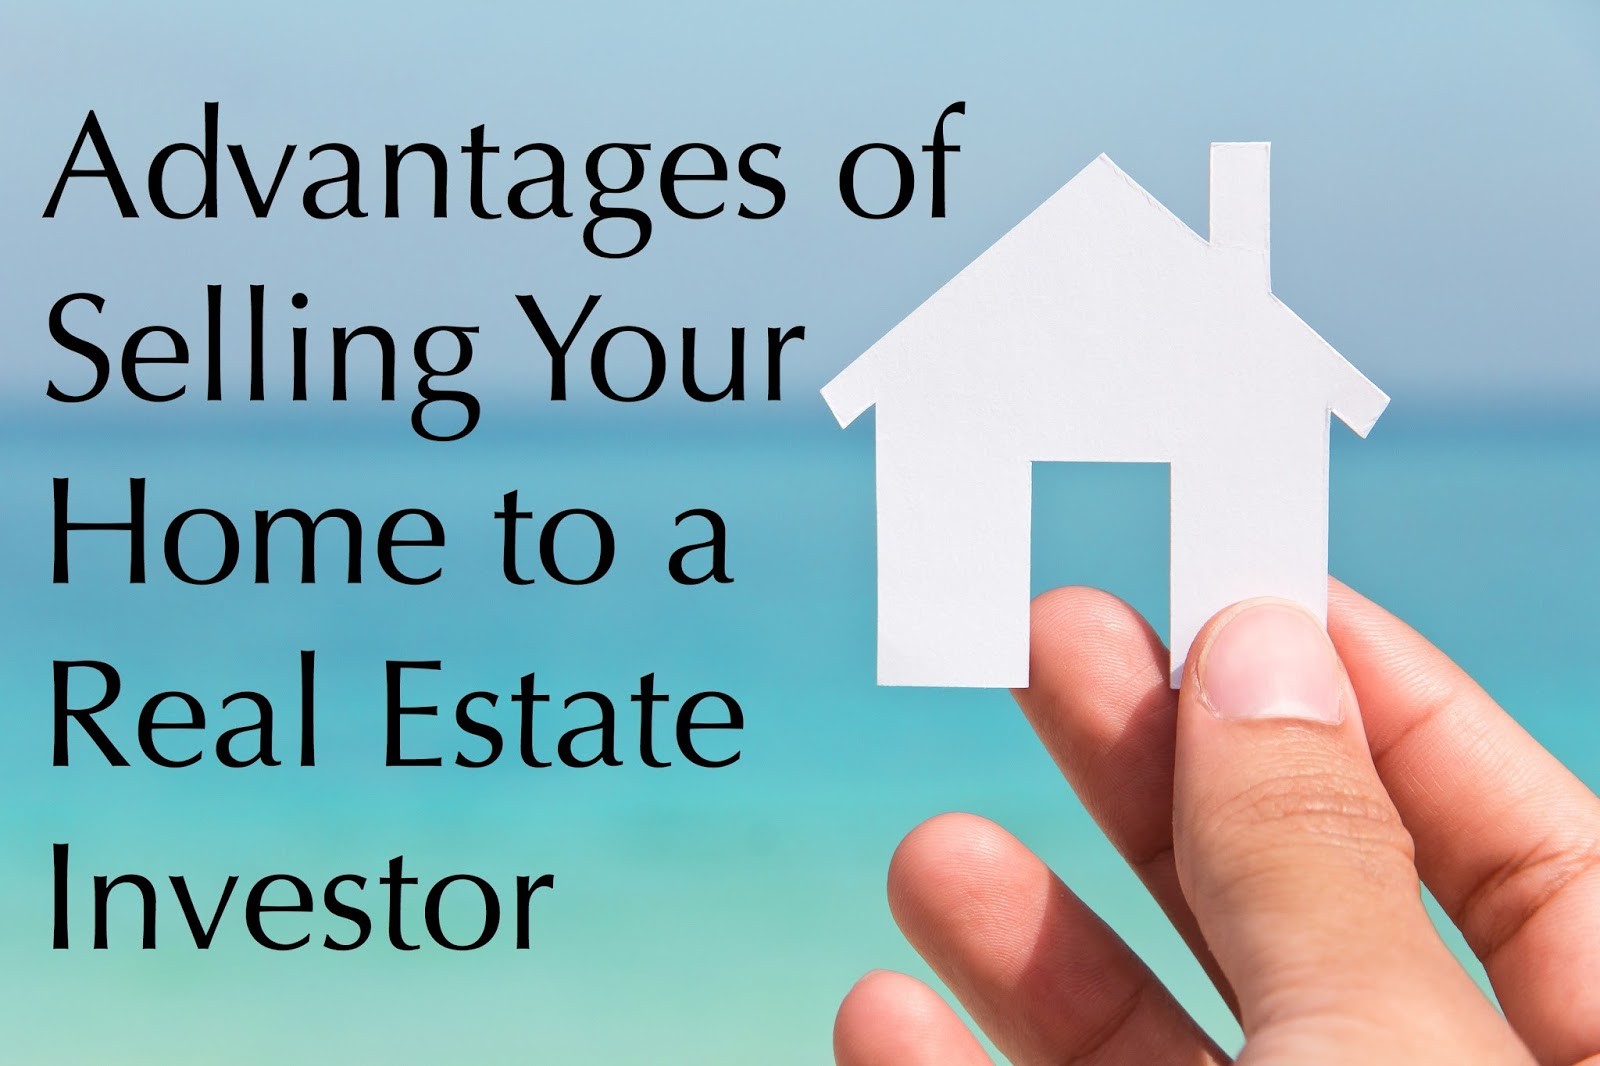 Advantages of Selling Your Home to a Real Estate Investor